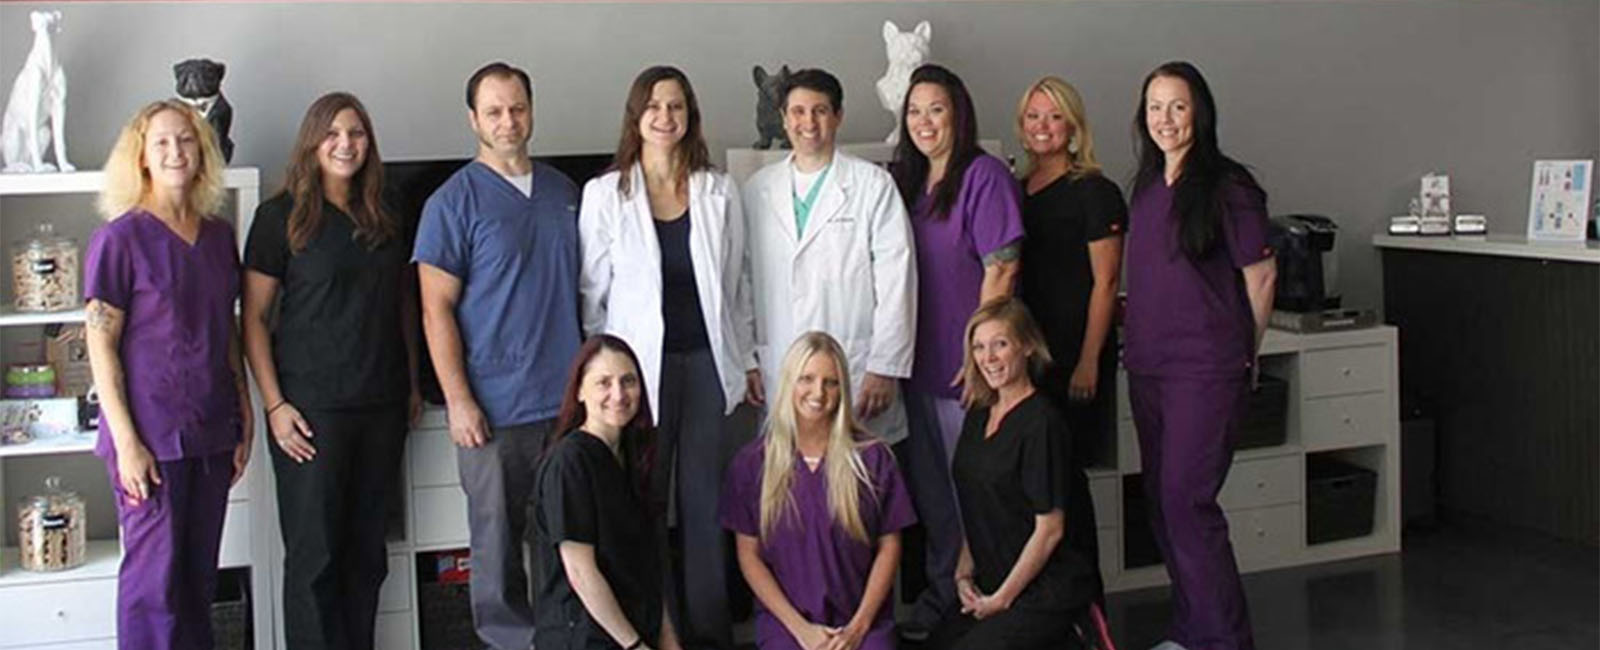 Homepage Team Picture of VCA Market Street Animal Hospital